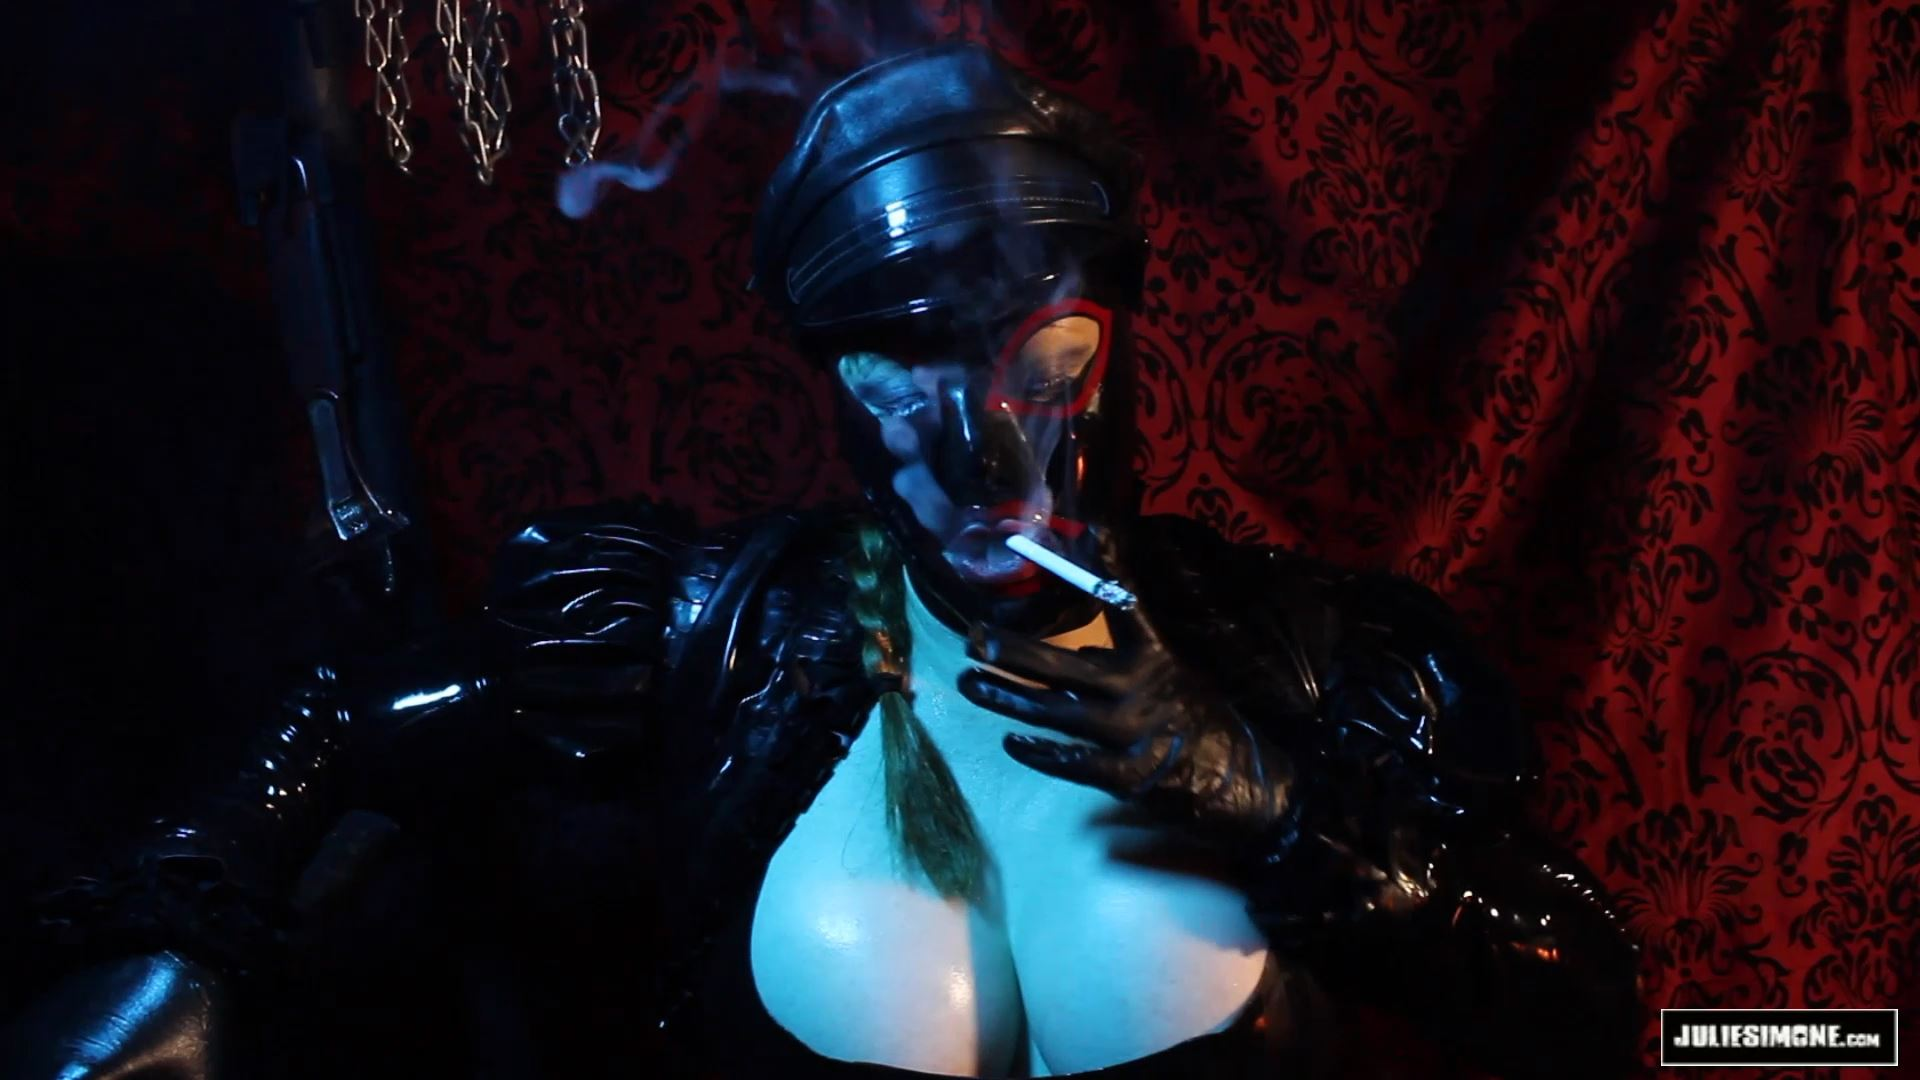 Julie Simone In Scene: Heavy Rubber Smoke - JULIESIMONE - FULL HD/1080p/MP4